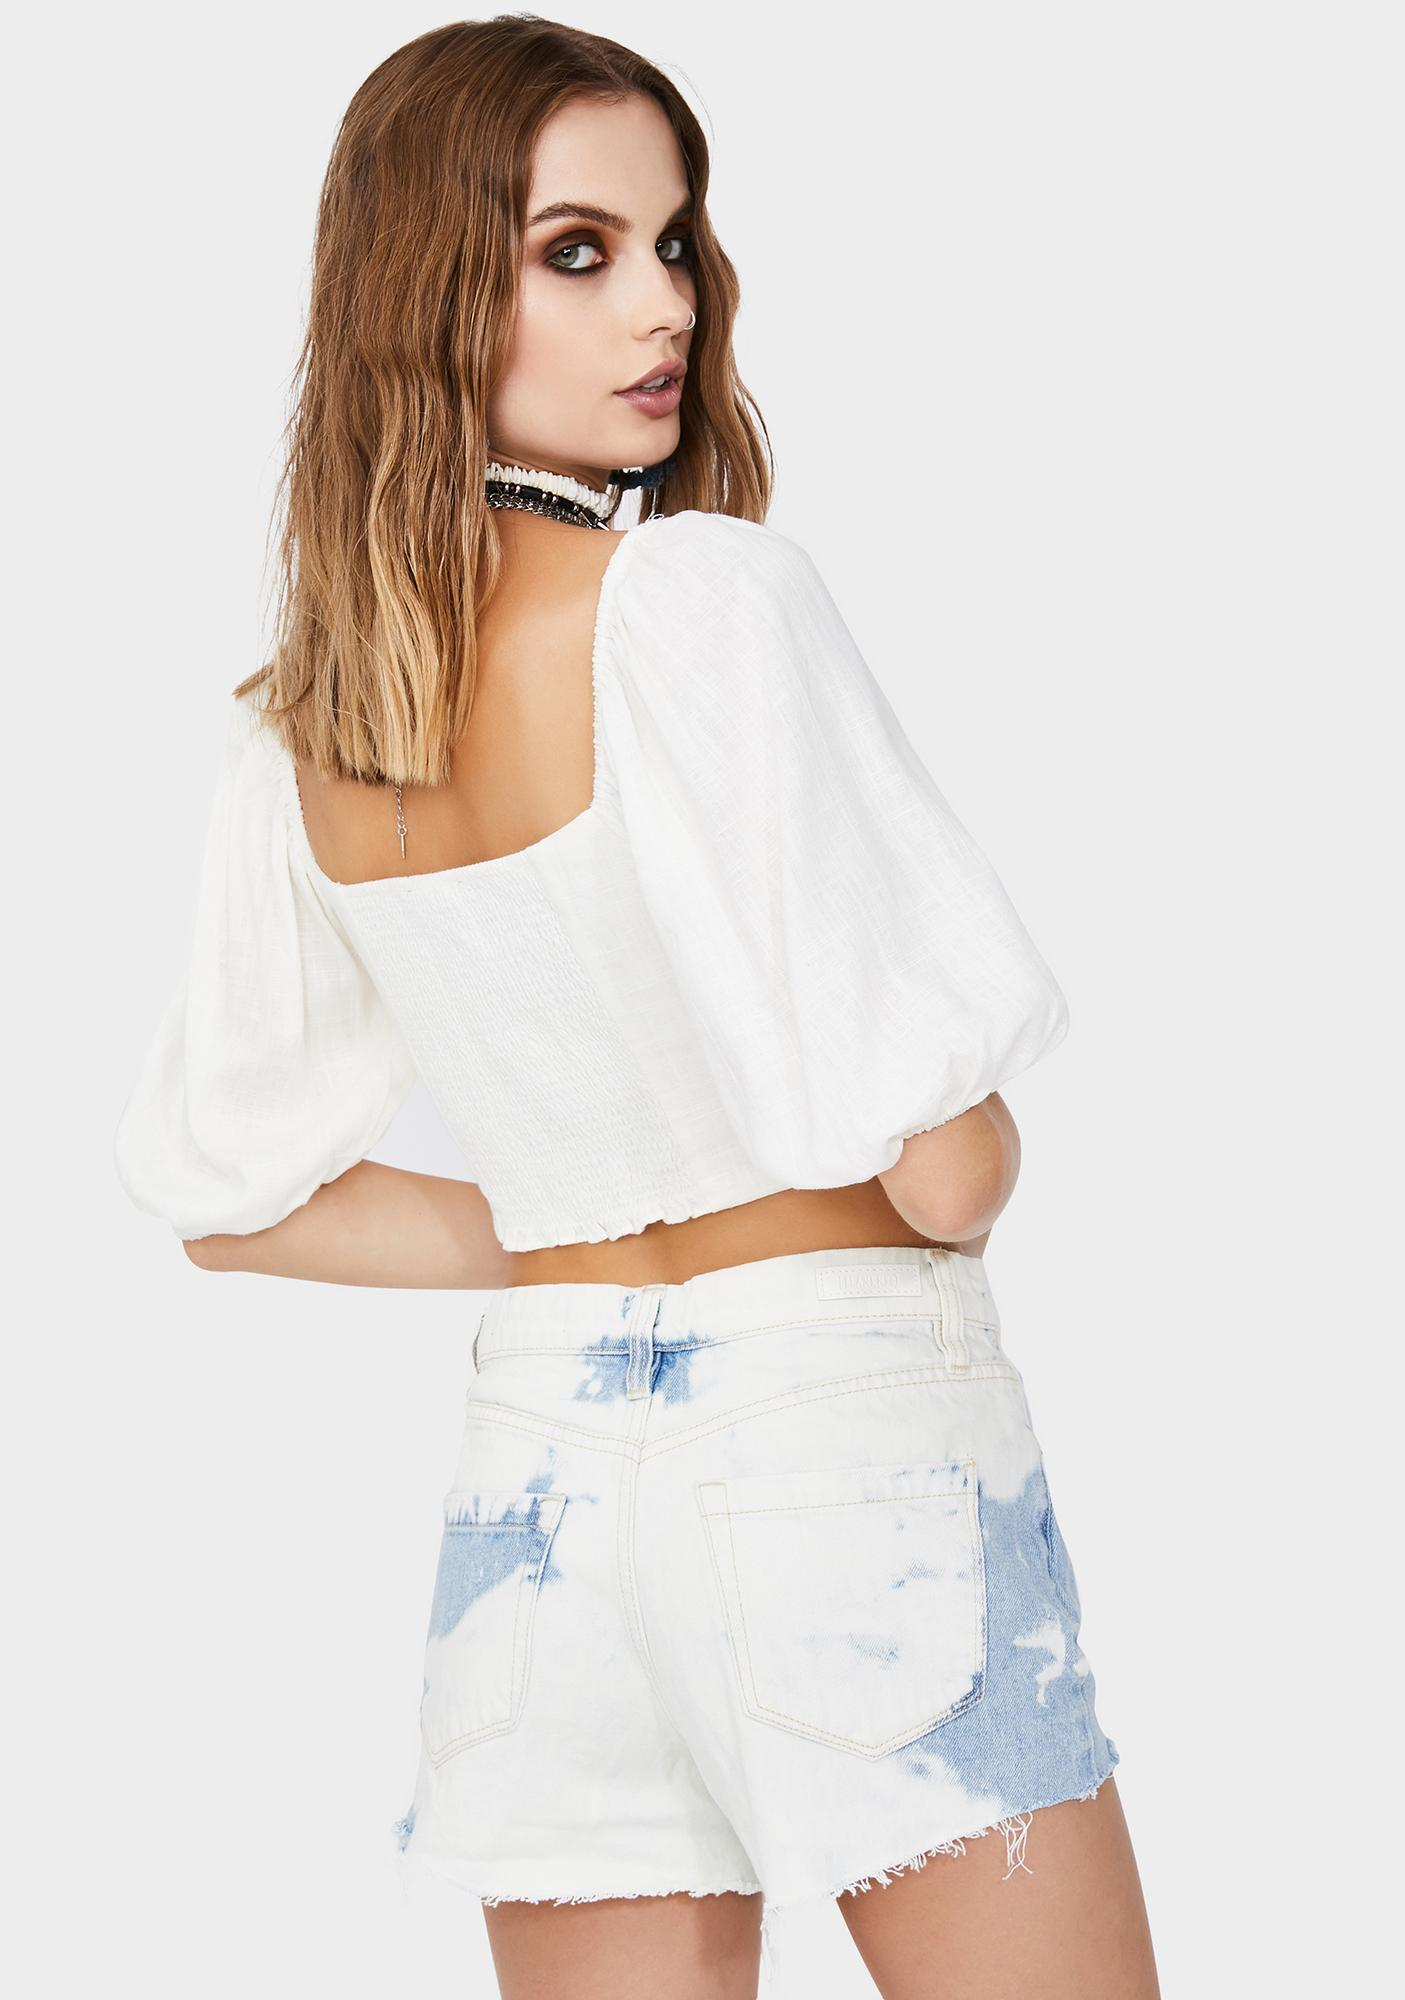 Boo Easy Does It Crop Top